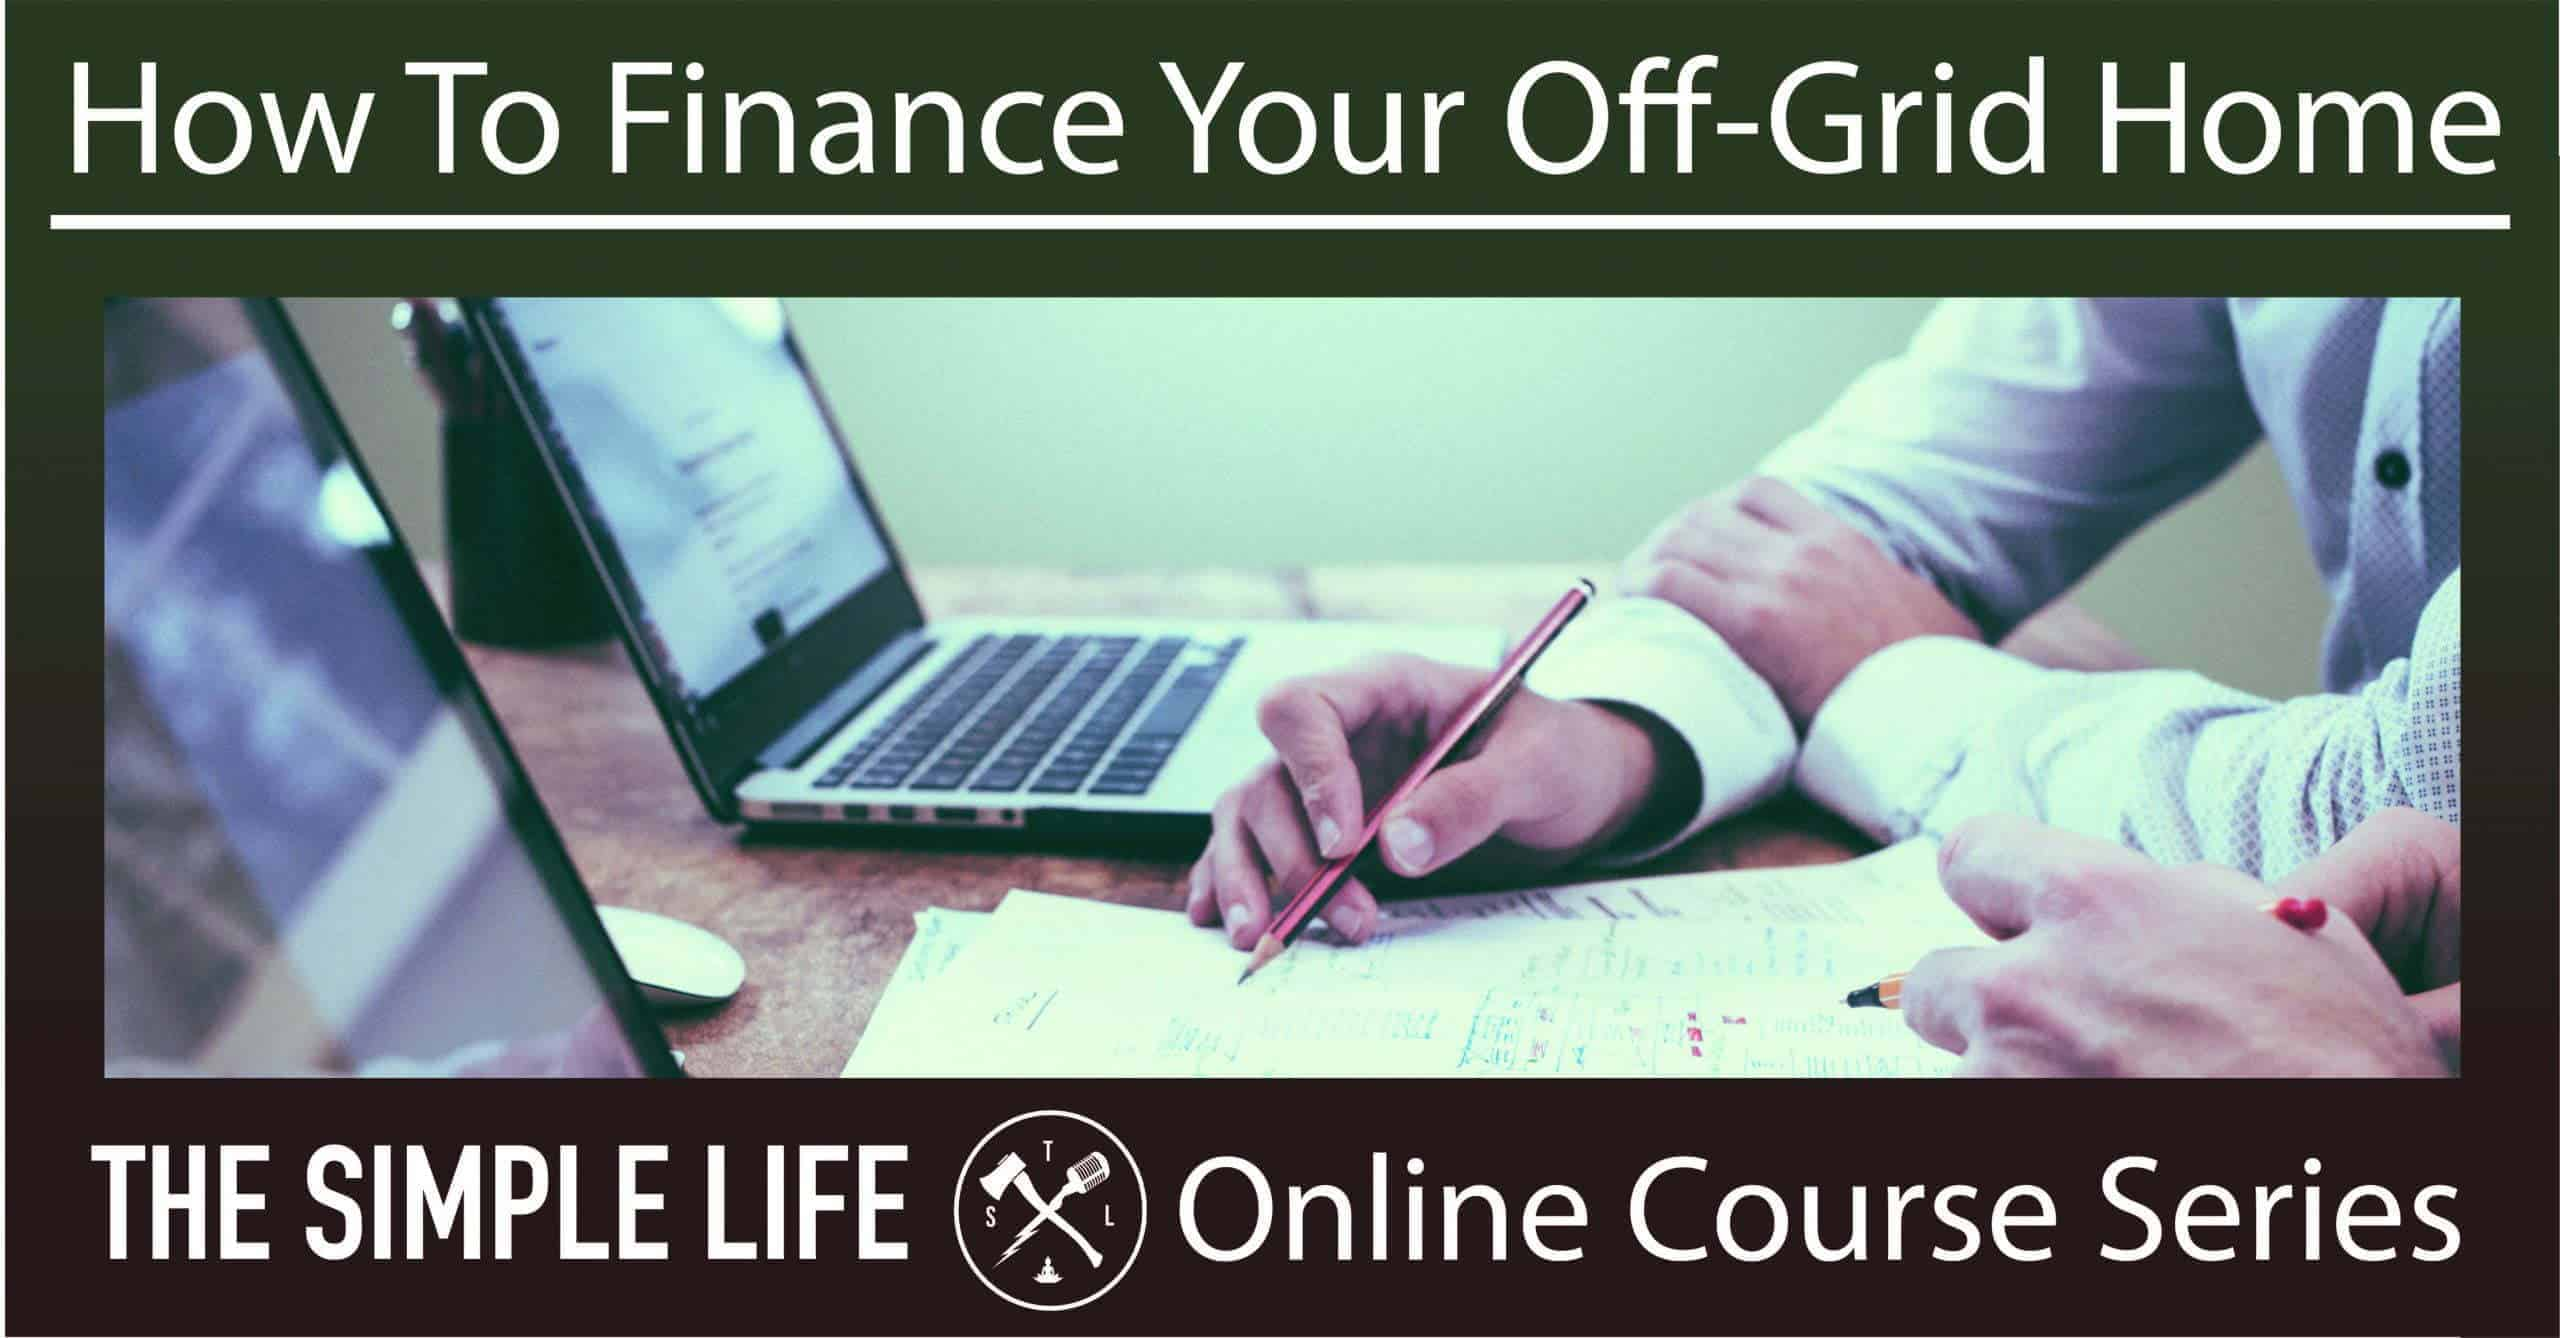 How to Finance Your Off-Grid Home and Property